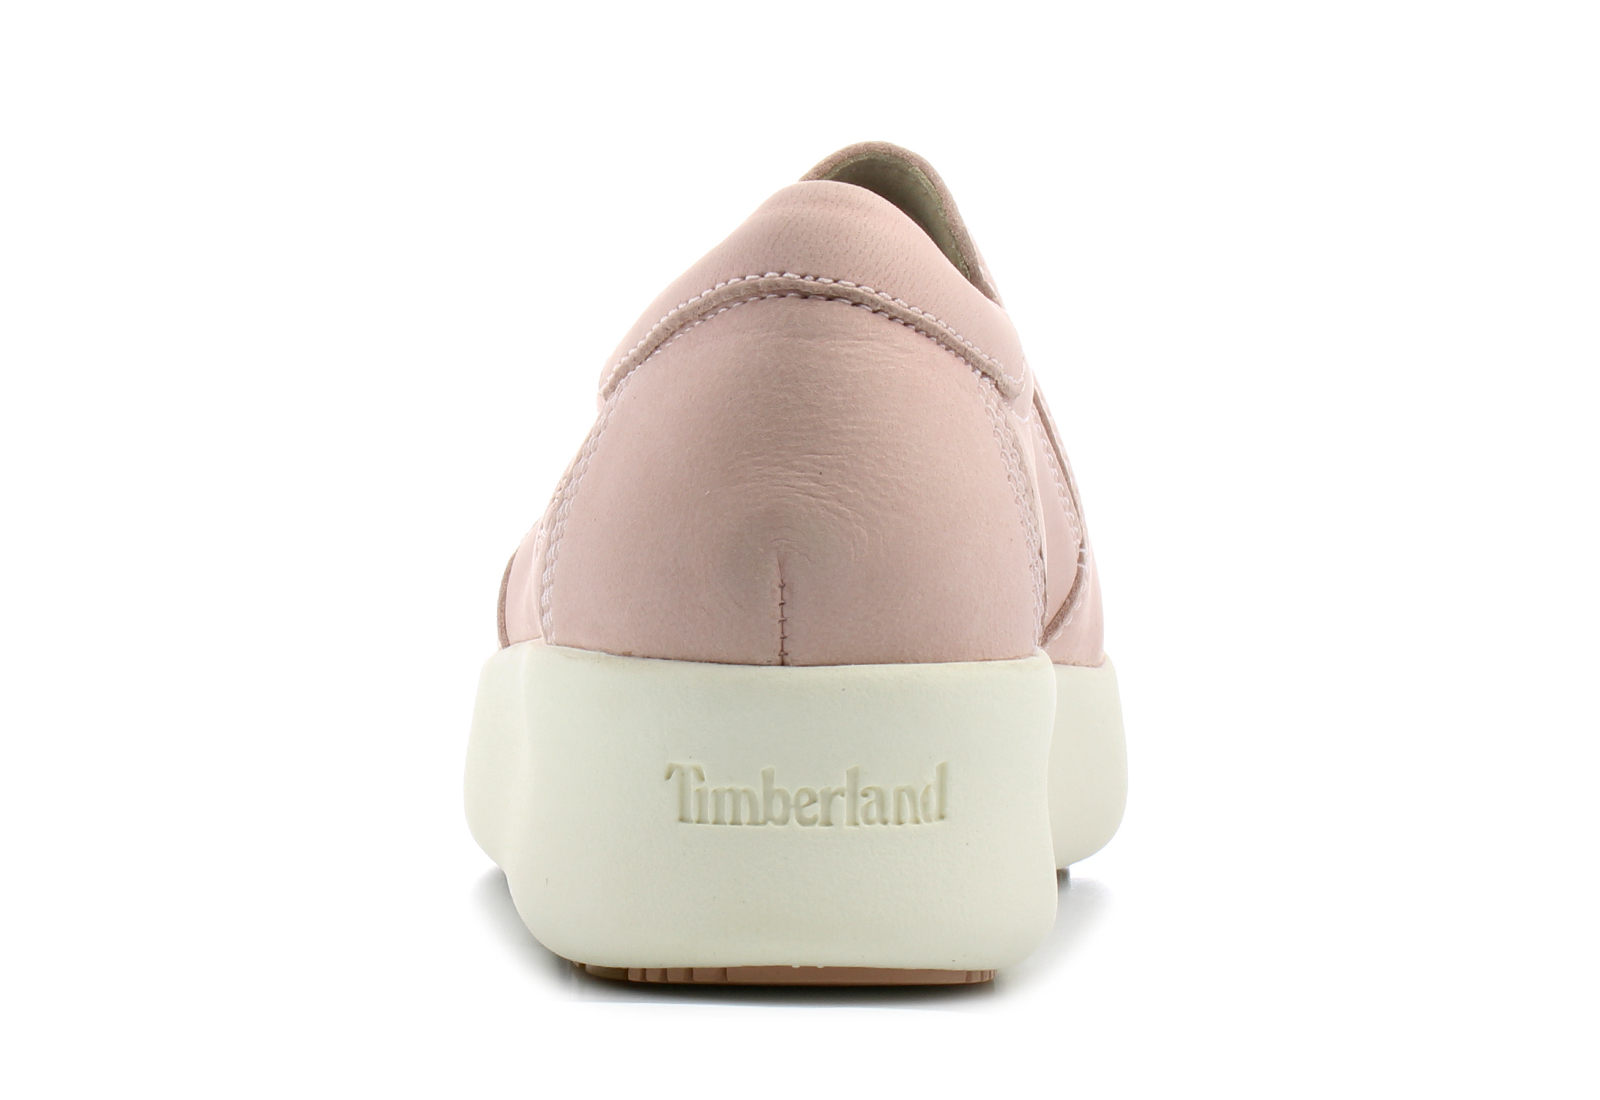 3edf8a52e6 Timberland Shoes - Berlin Park - A1MVT-ros - Online shop for ...